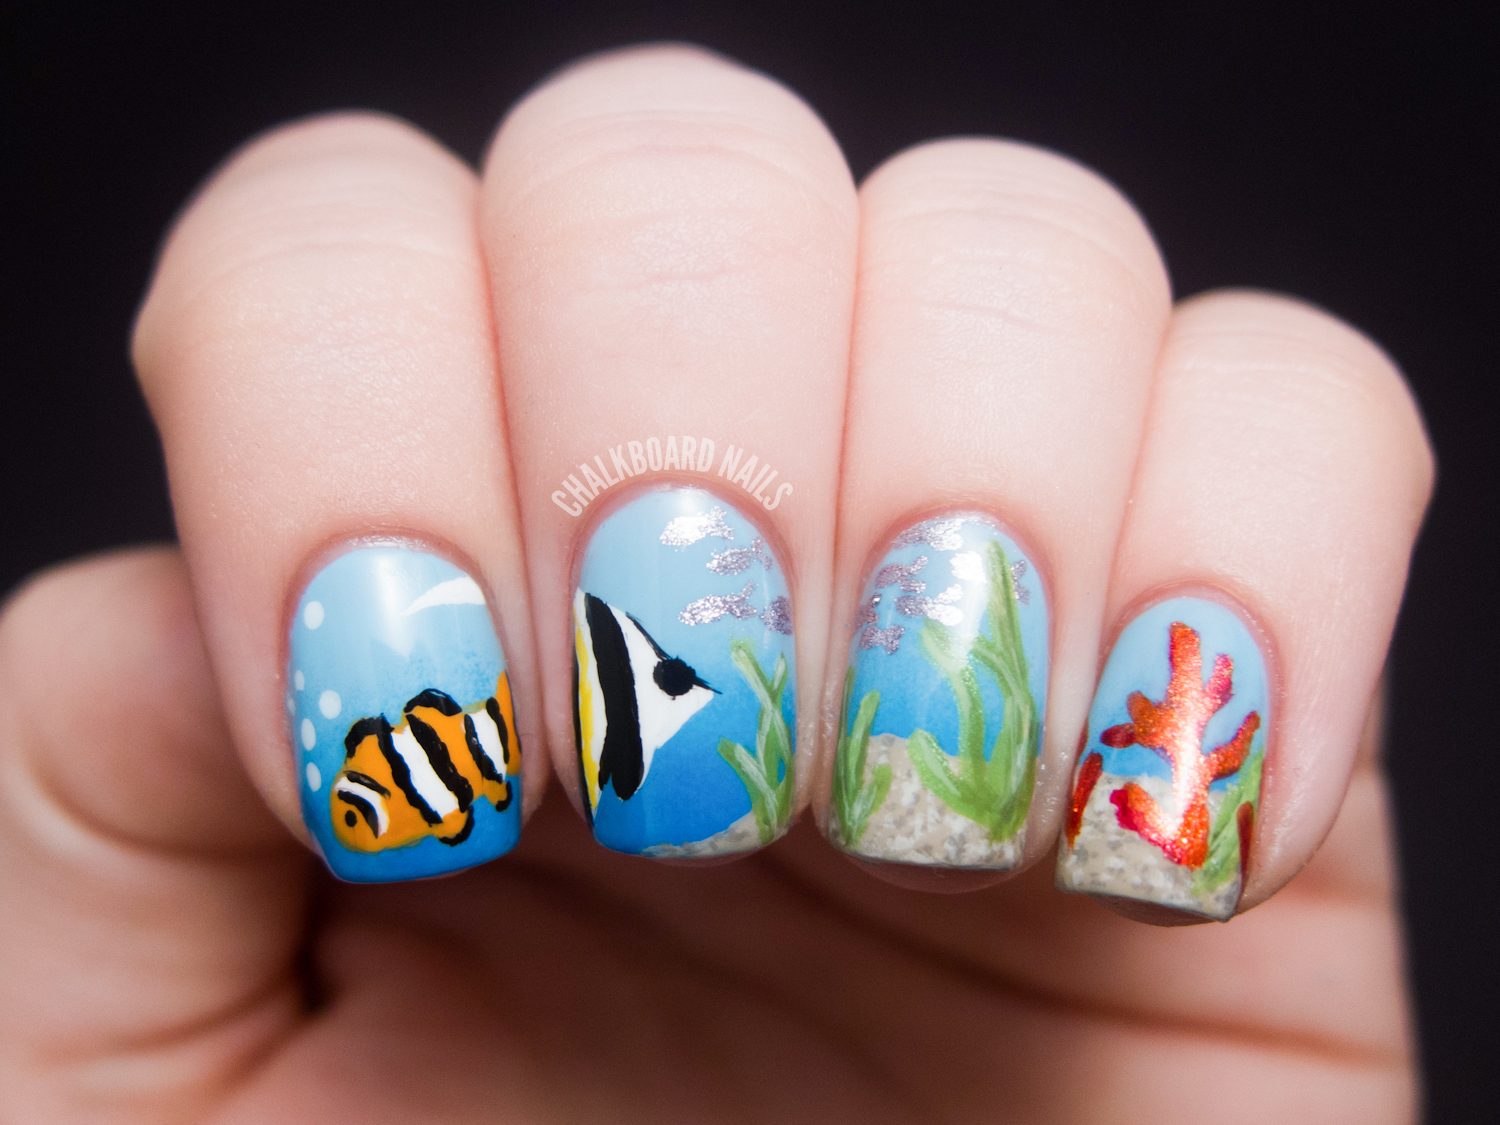 Sea manicure: the best ideas. Manicure with a sea pattern 56